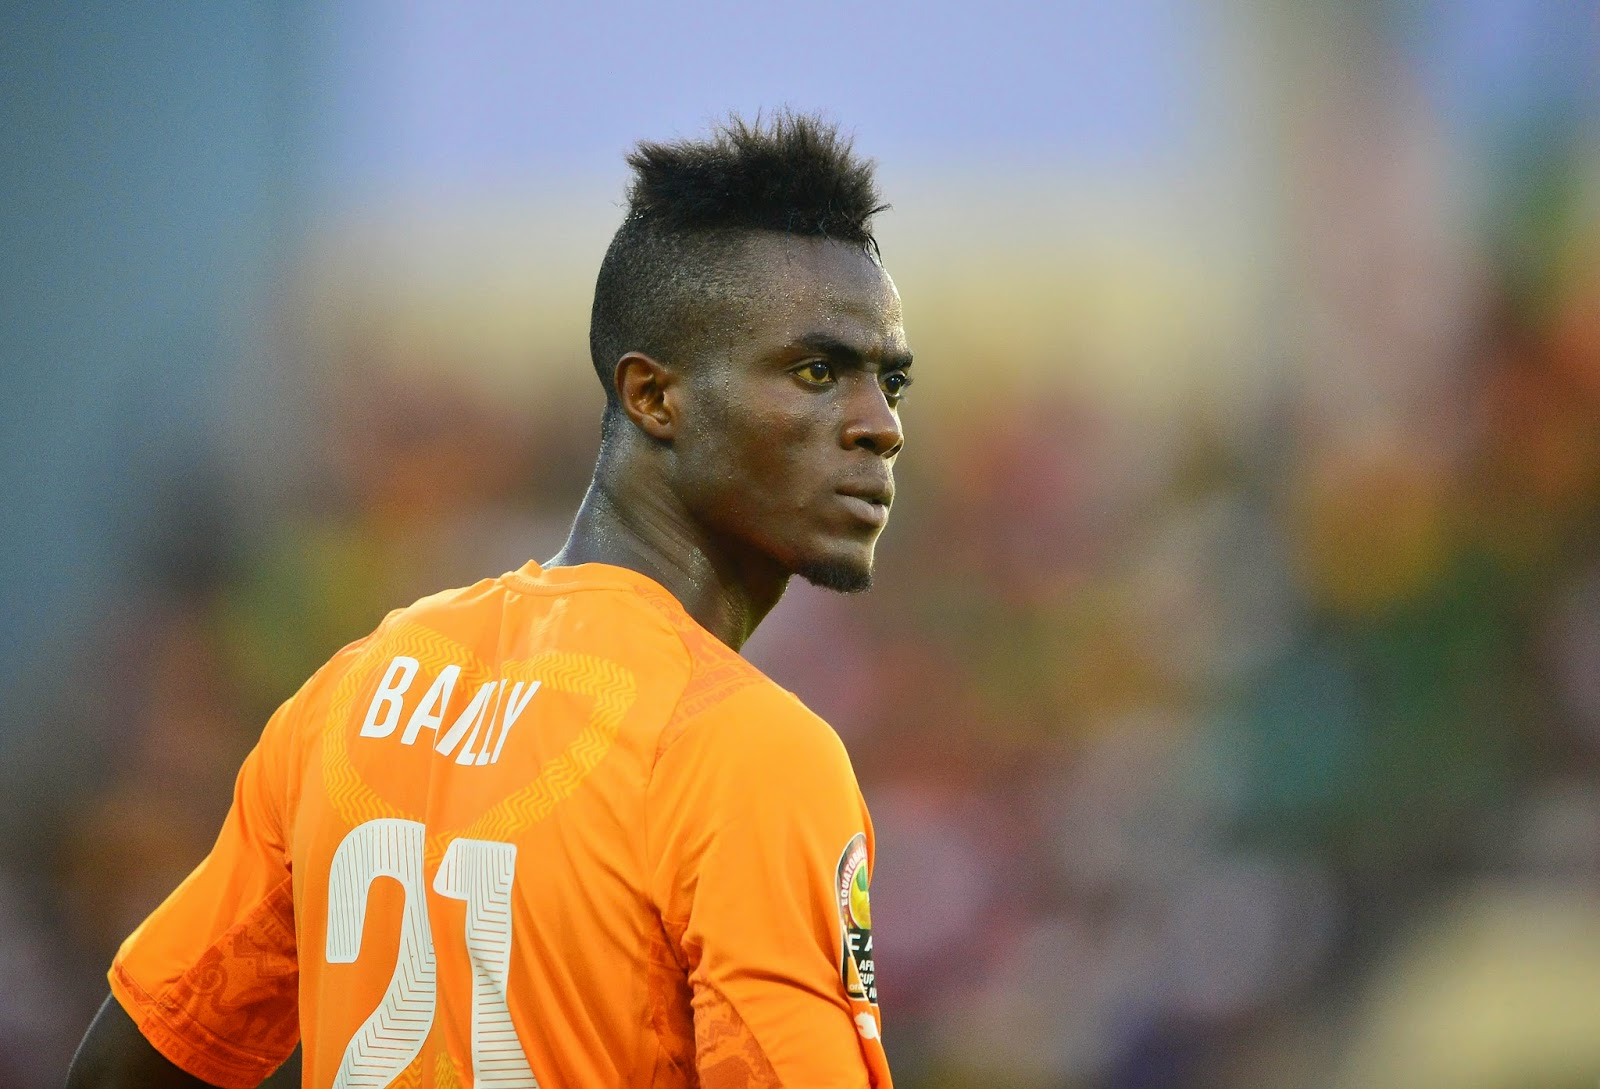 Manchester United signs Eric Bailly from Villarreal